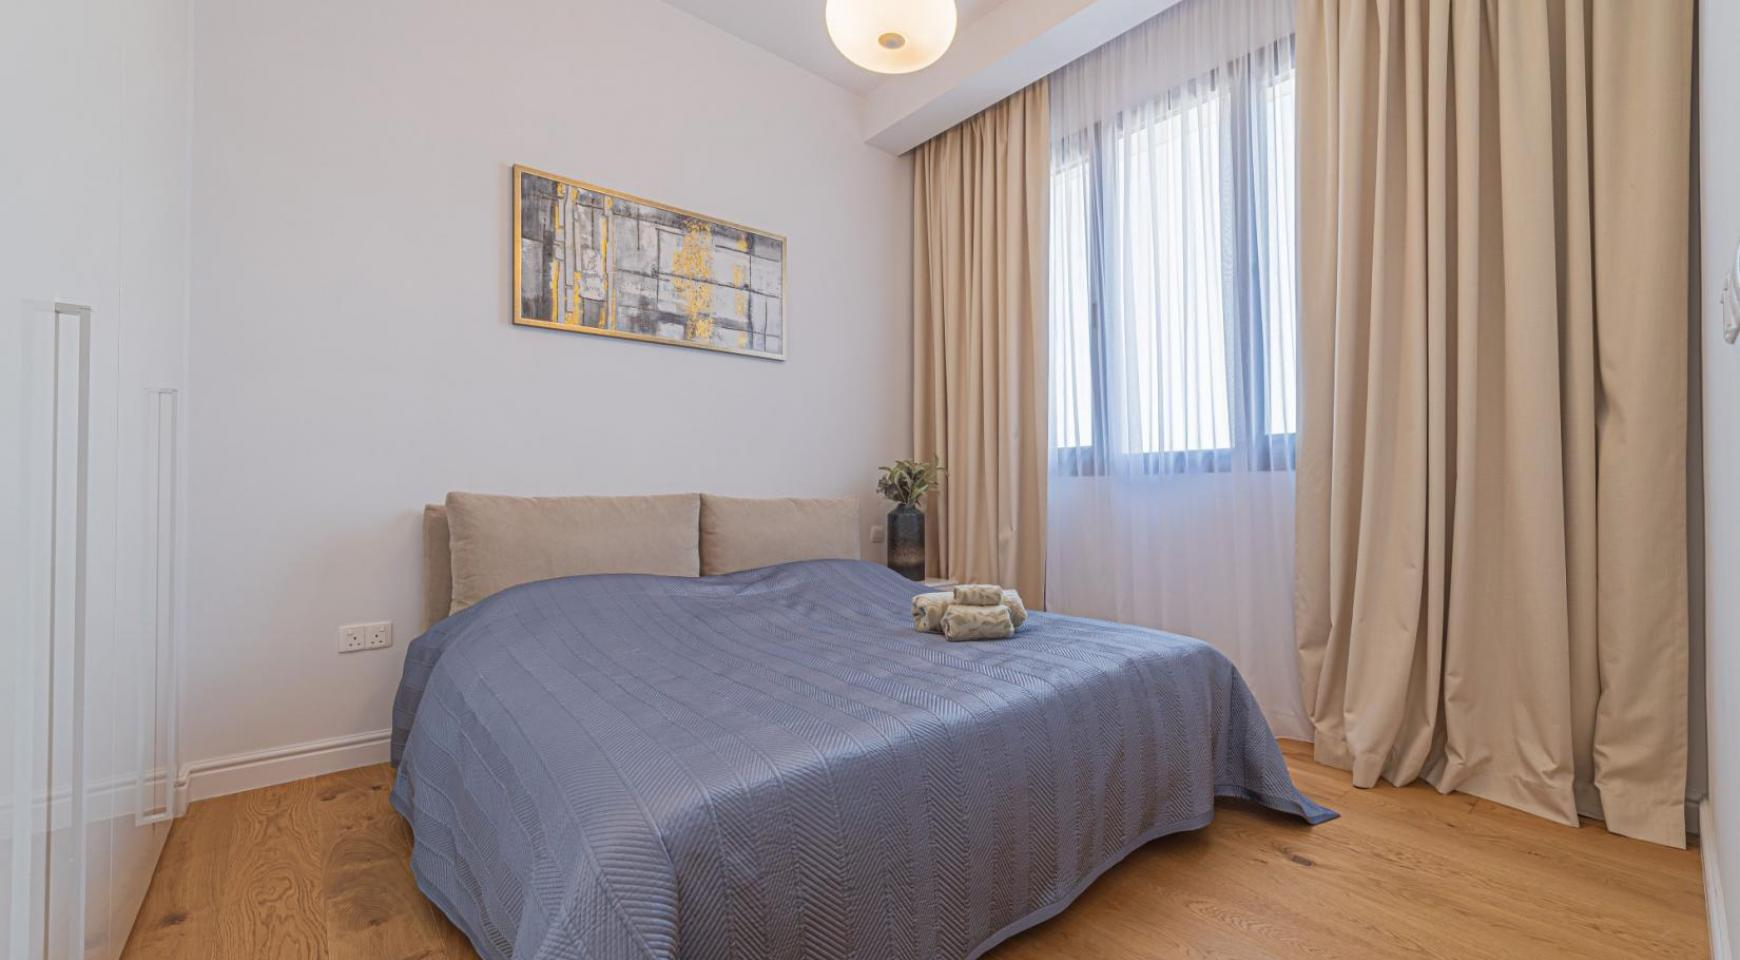 Hortensia Residence, Apt. 301. 2 Bedroom Apartment within a New Complex near the Sea  - 58